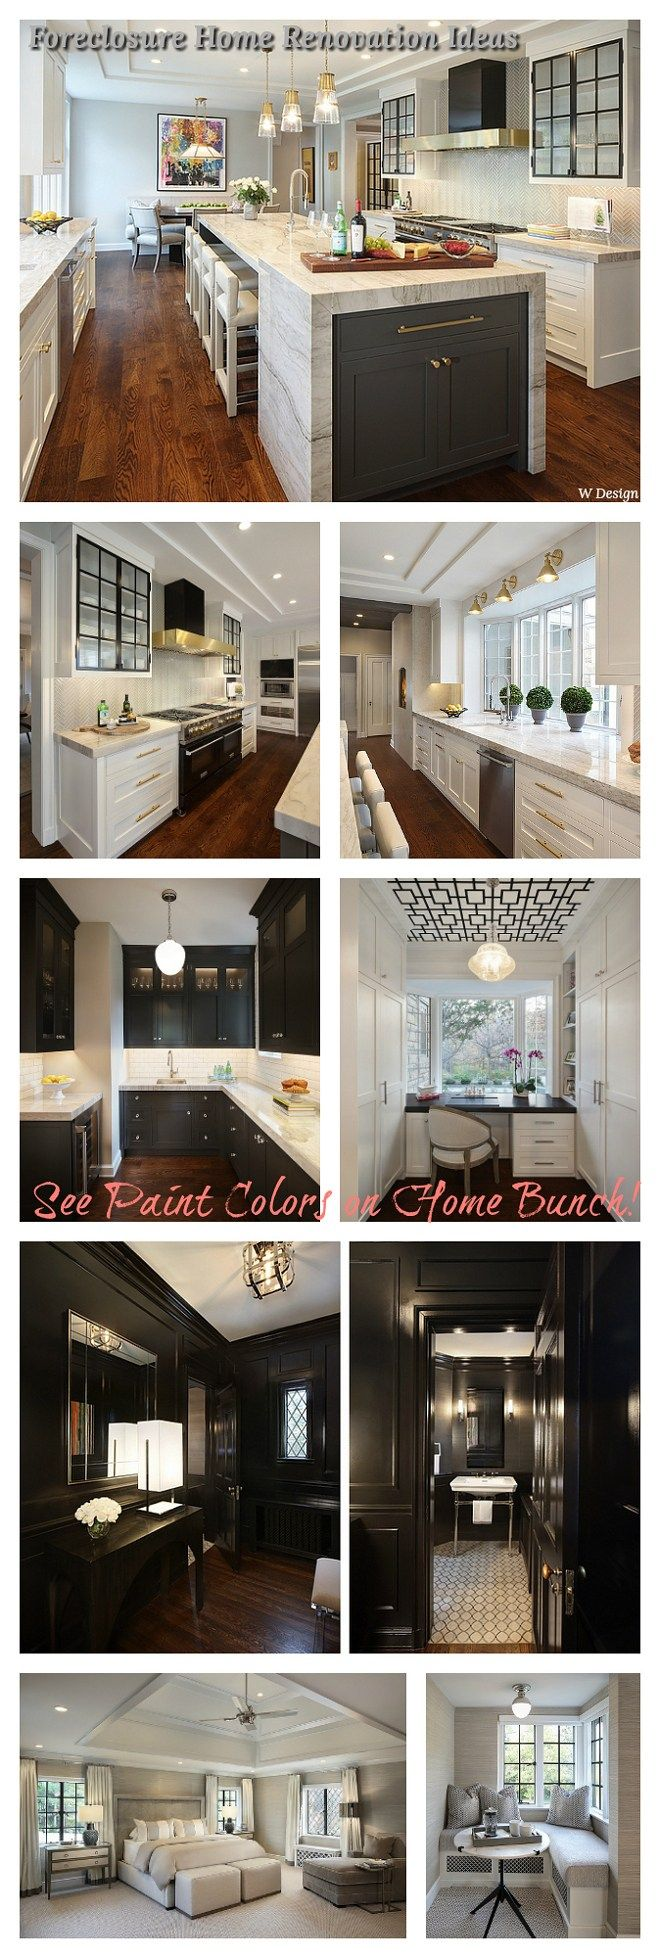 Forclosure Remodel: Foreclosure Home Renovation Ideas Foreclosure Home